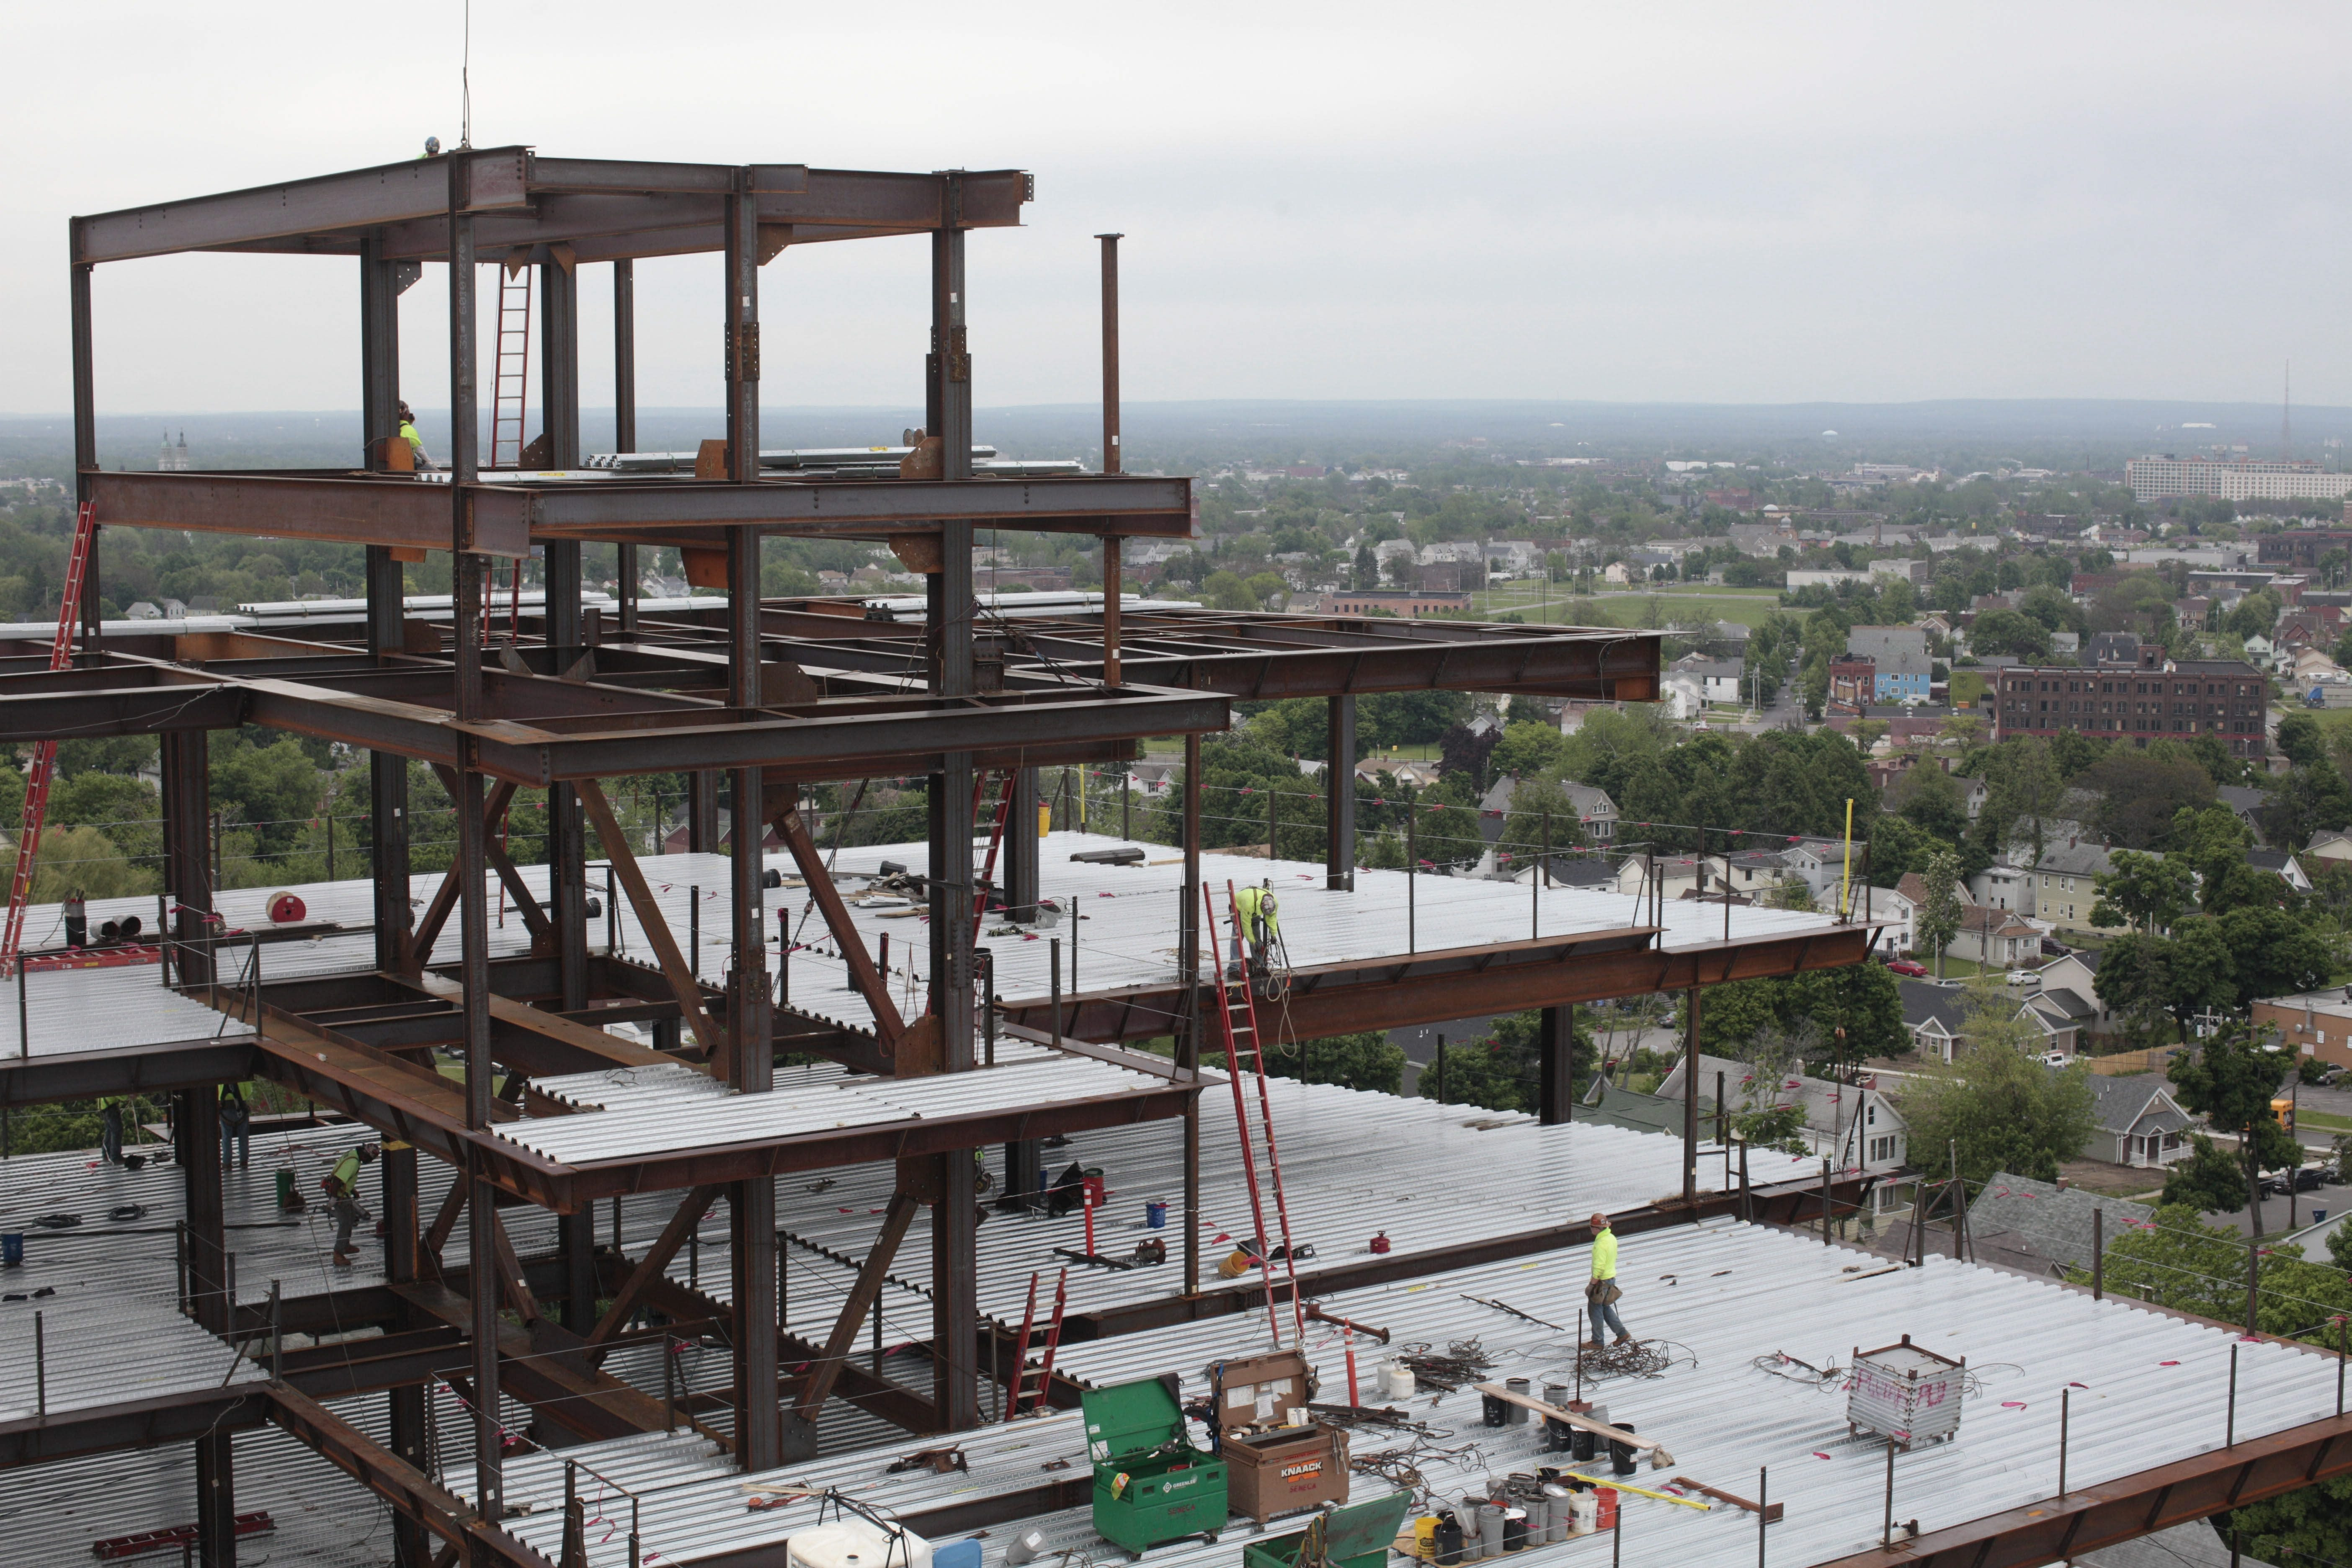 Construction of the new Roswell Park Clinical Sciences Center is part of Buffalo's resurgence, a development that will be encouraged by the wildly popular 43North business plan competition.